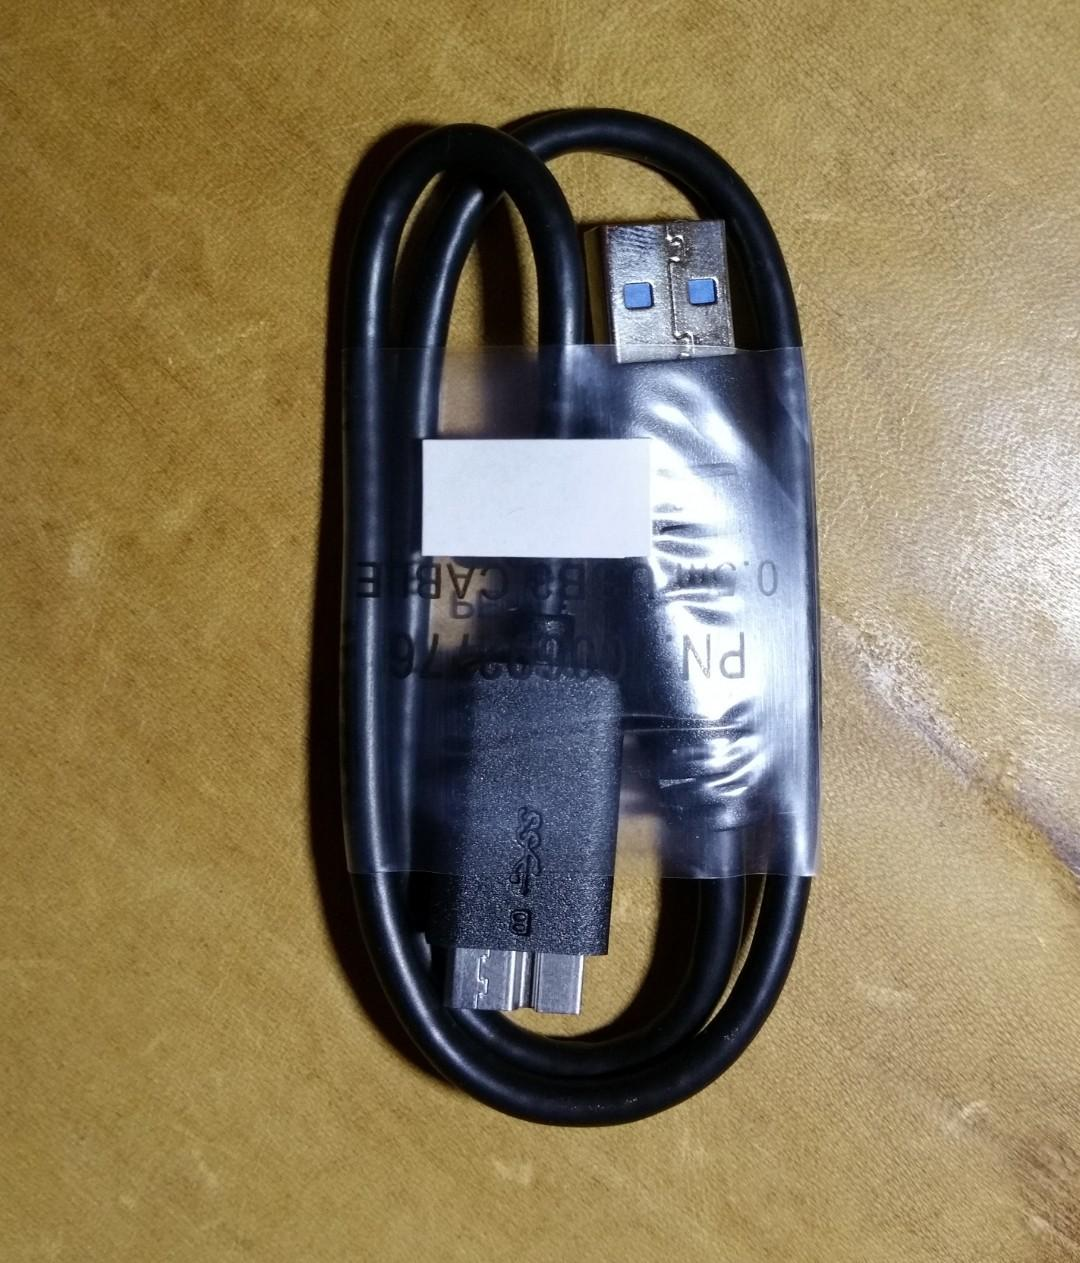 USB Cable 3.0 for external hard drive Seagate WD Toshiba compatible